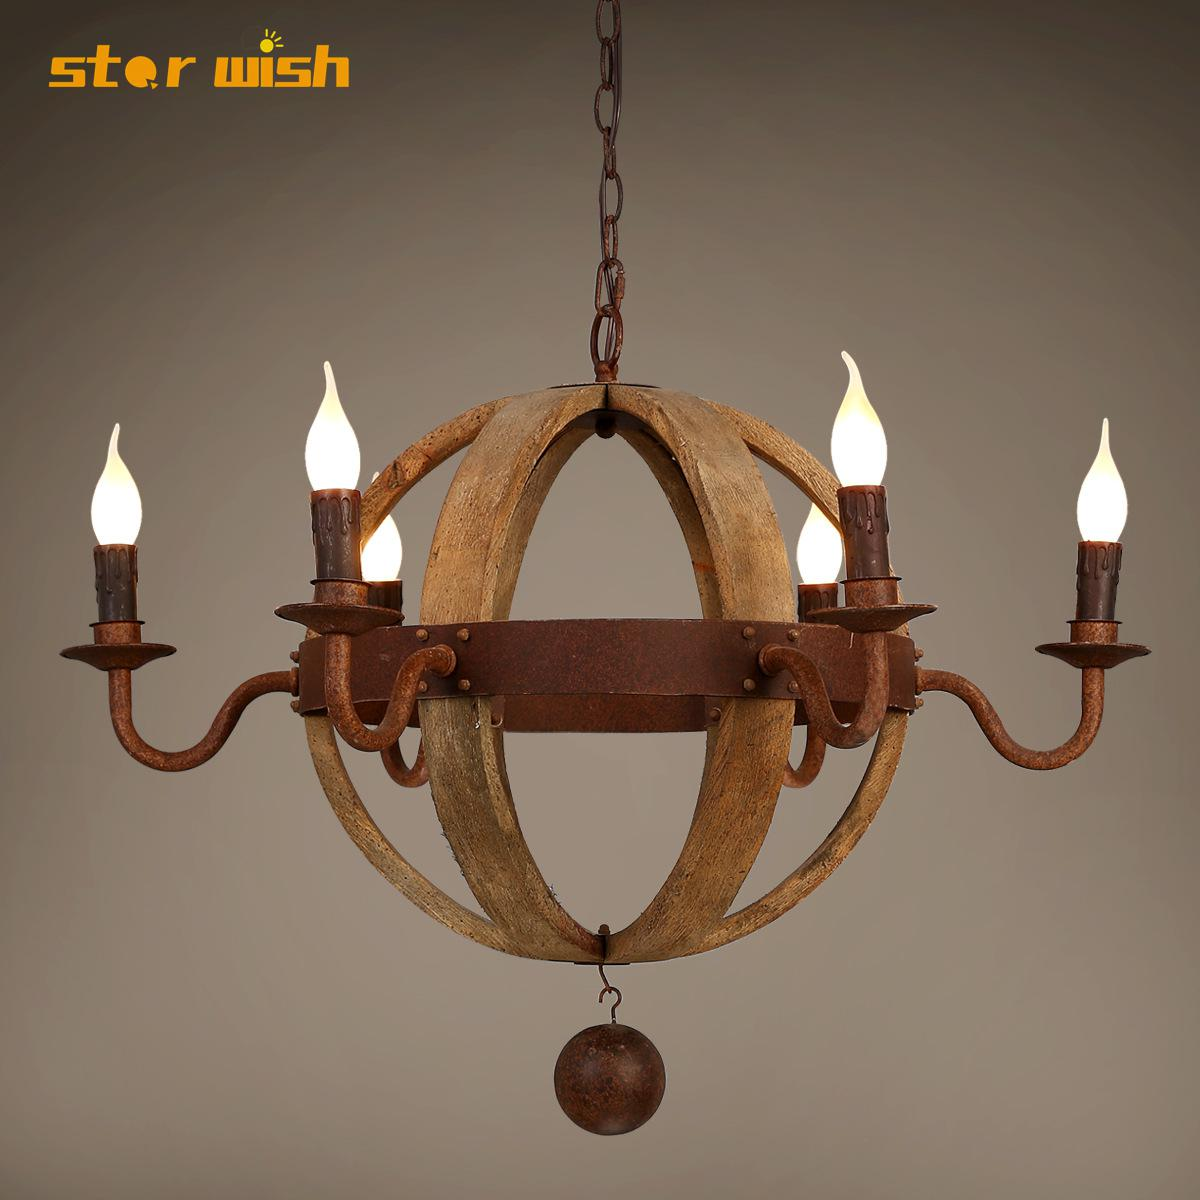 American classical  Ball candle Chandelier Lighting 6 8 head  Individual Hanging  Decoration for Residence home  living roomAmerican classical  Ball candle Chandelier Lighting 6 8 head  Individual Hanging  Decoration for Residence home  living room